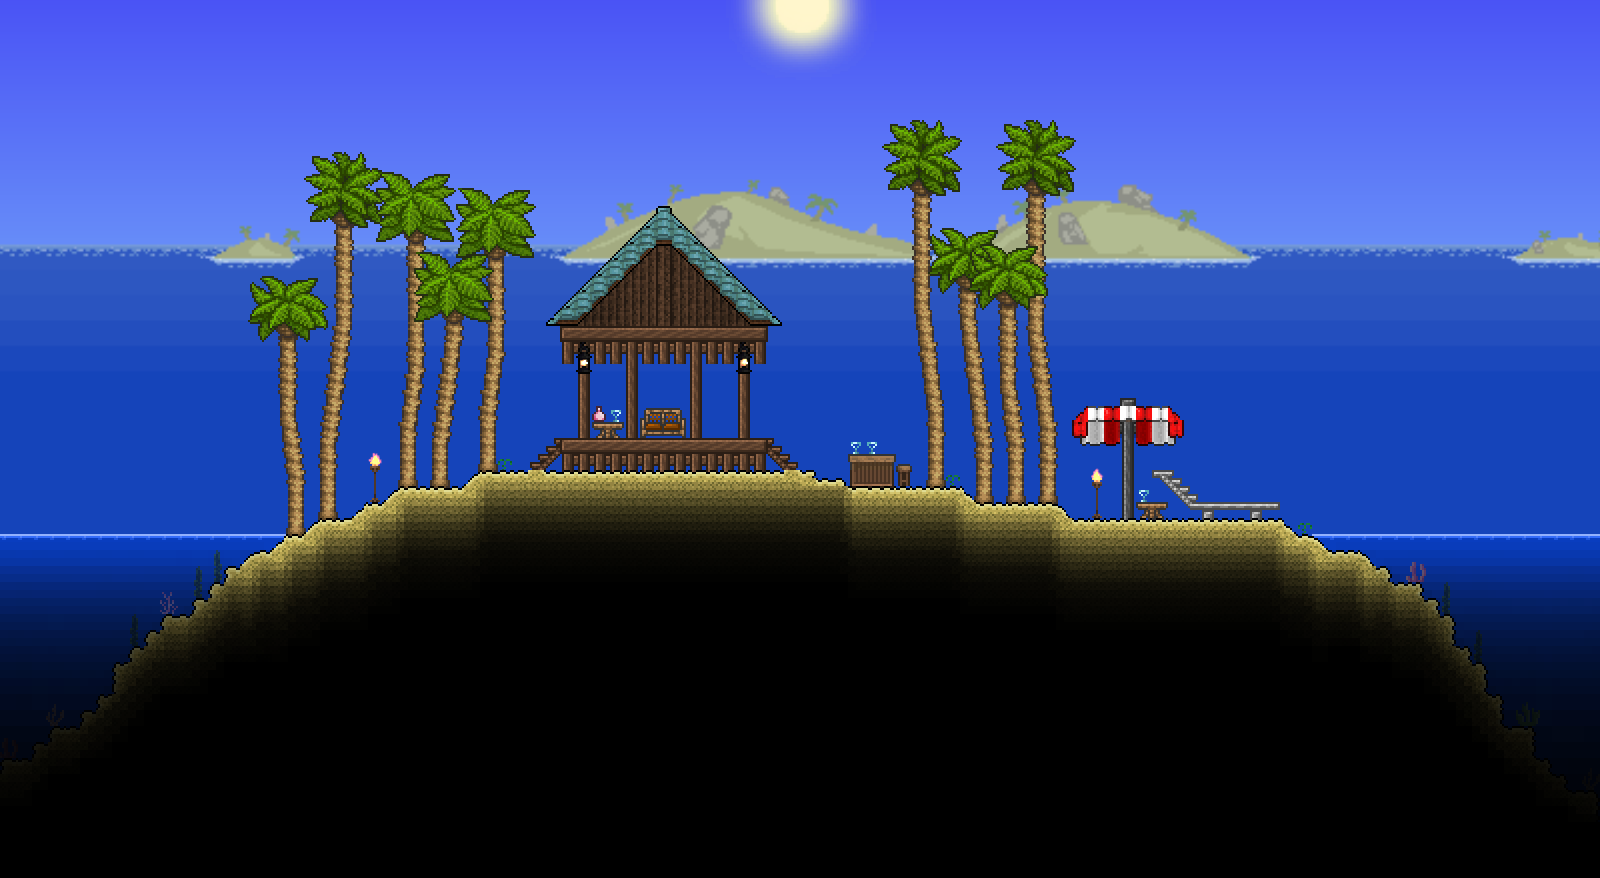 Pc Flor3nce2456 S Builds Collection Terraria